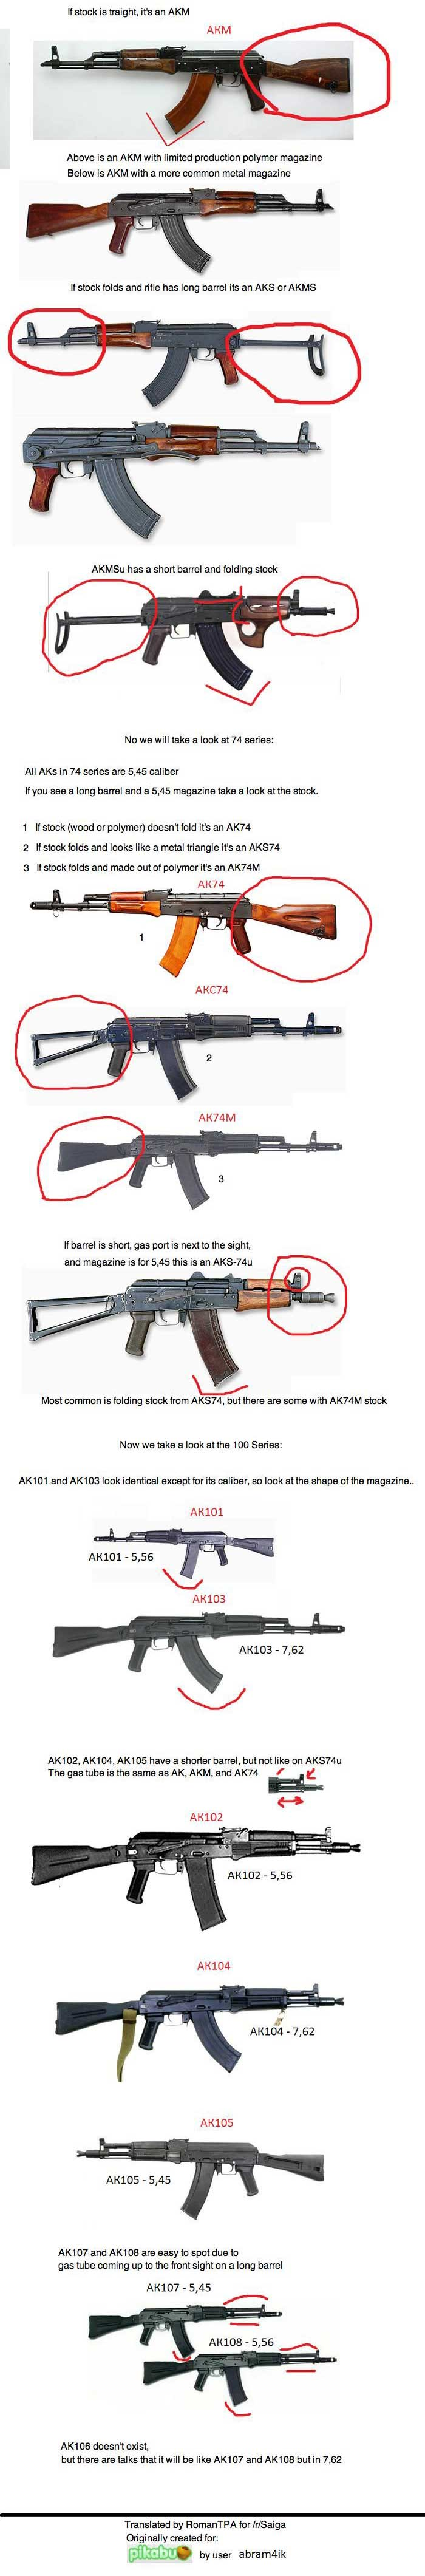 How-To-Distinguish-AK-Variants-Infographic-2